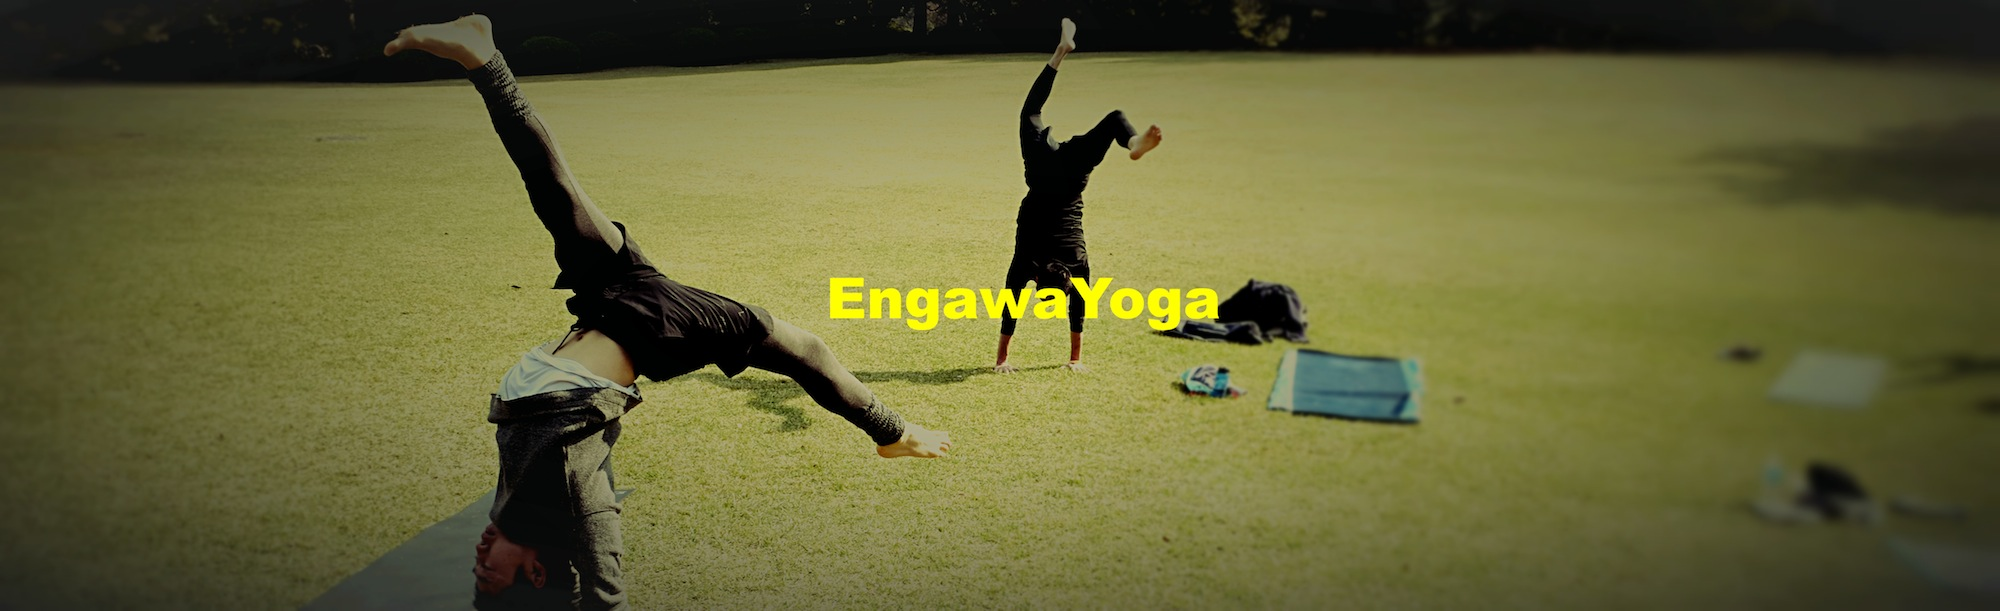 engawayoga-top